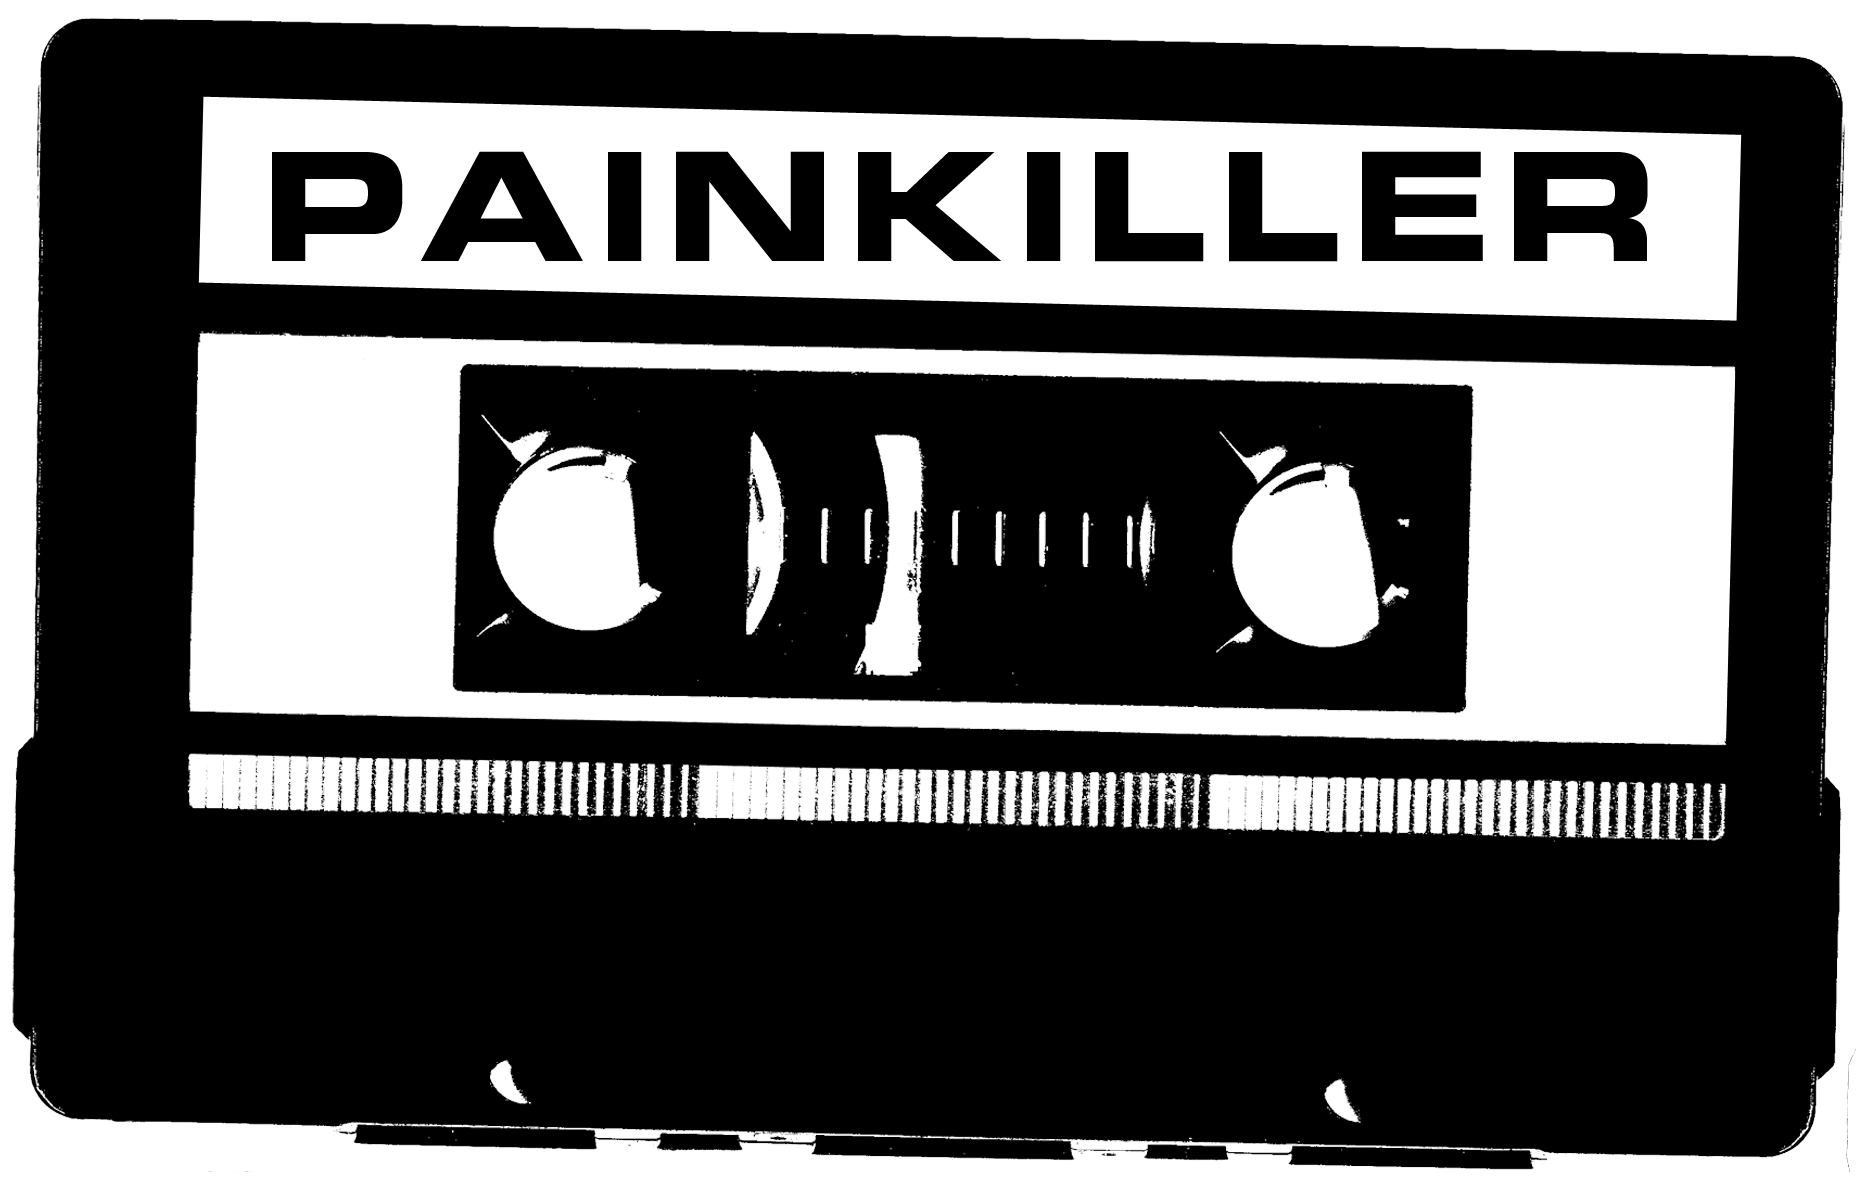 painkiller_logo.png